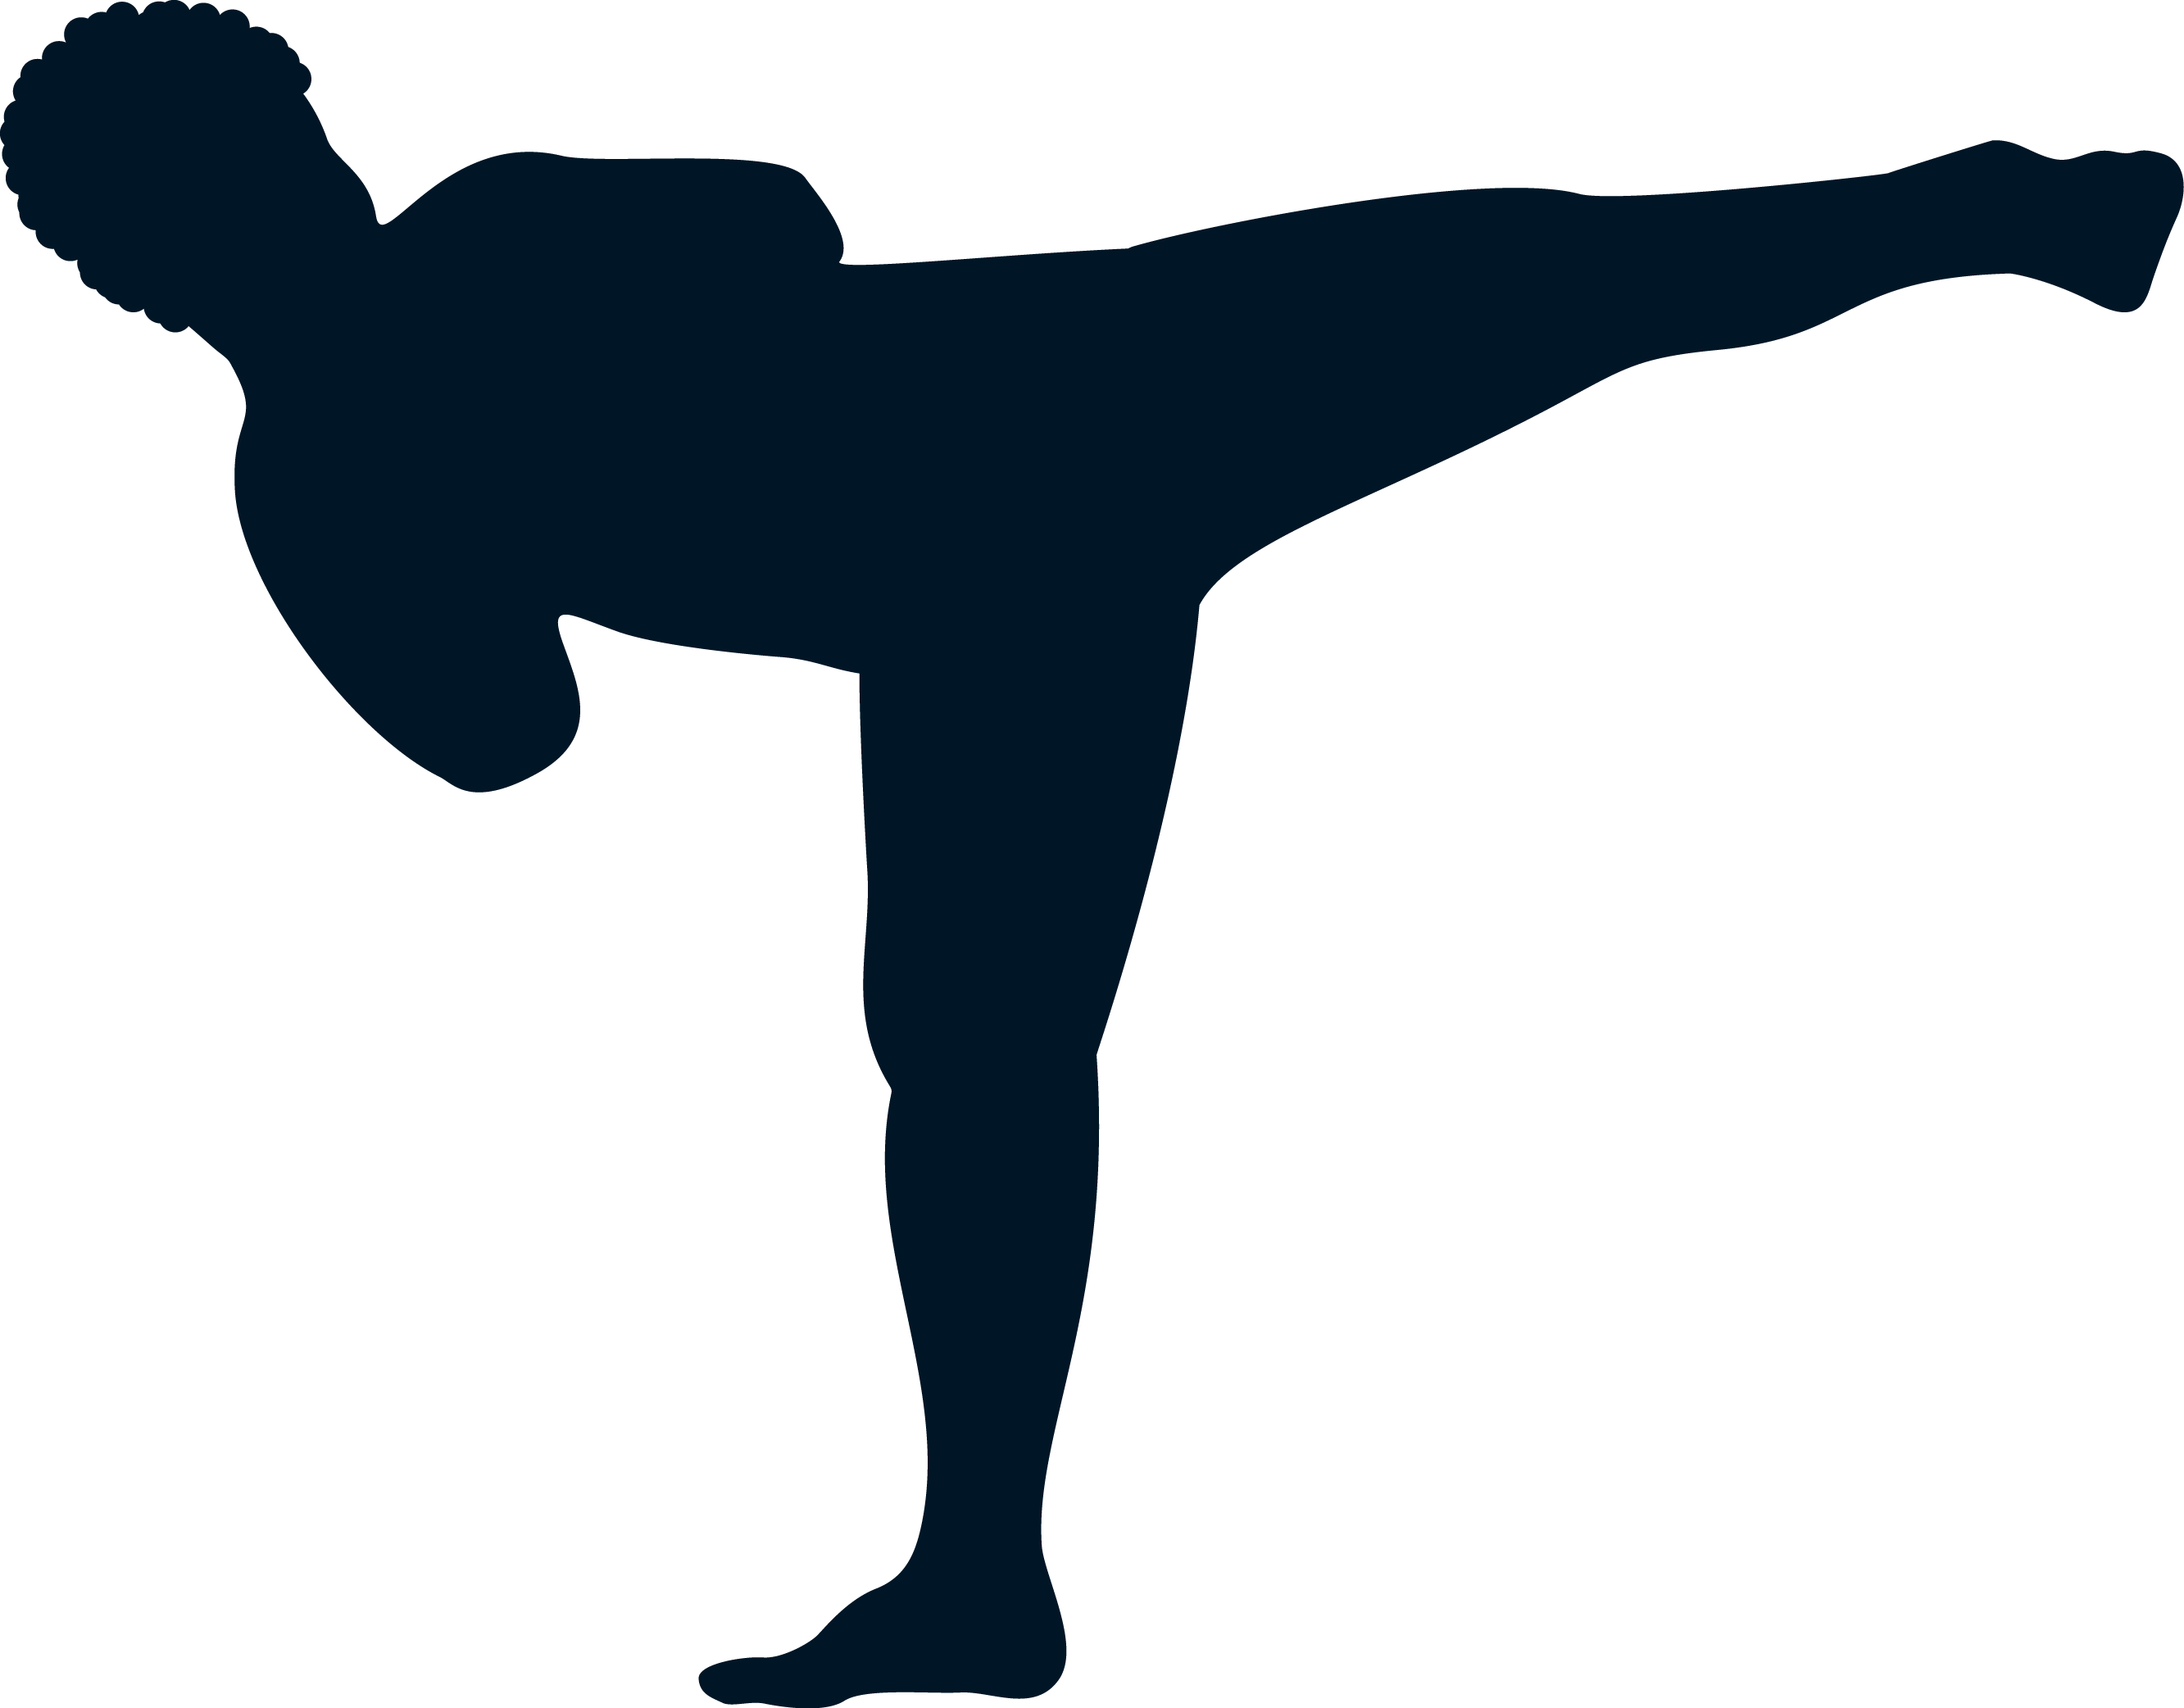 Create a simple silhouette martial artist in the shape of a T!!